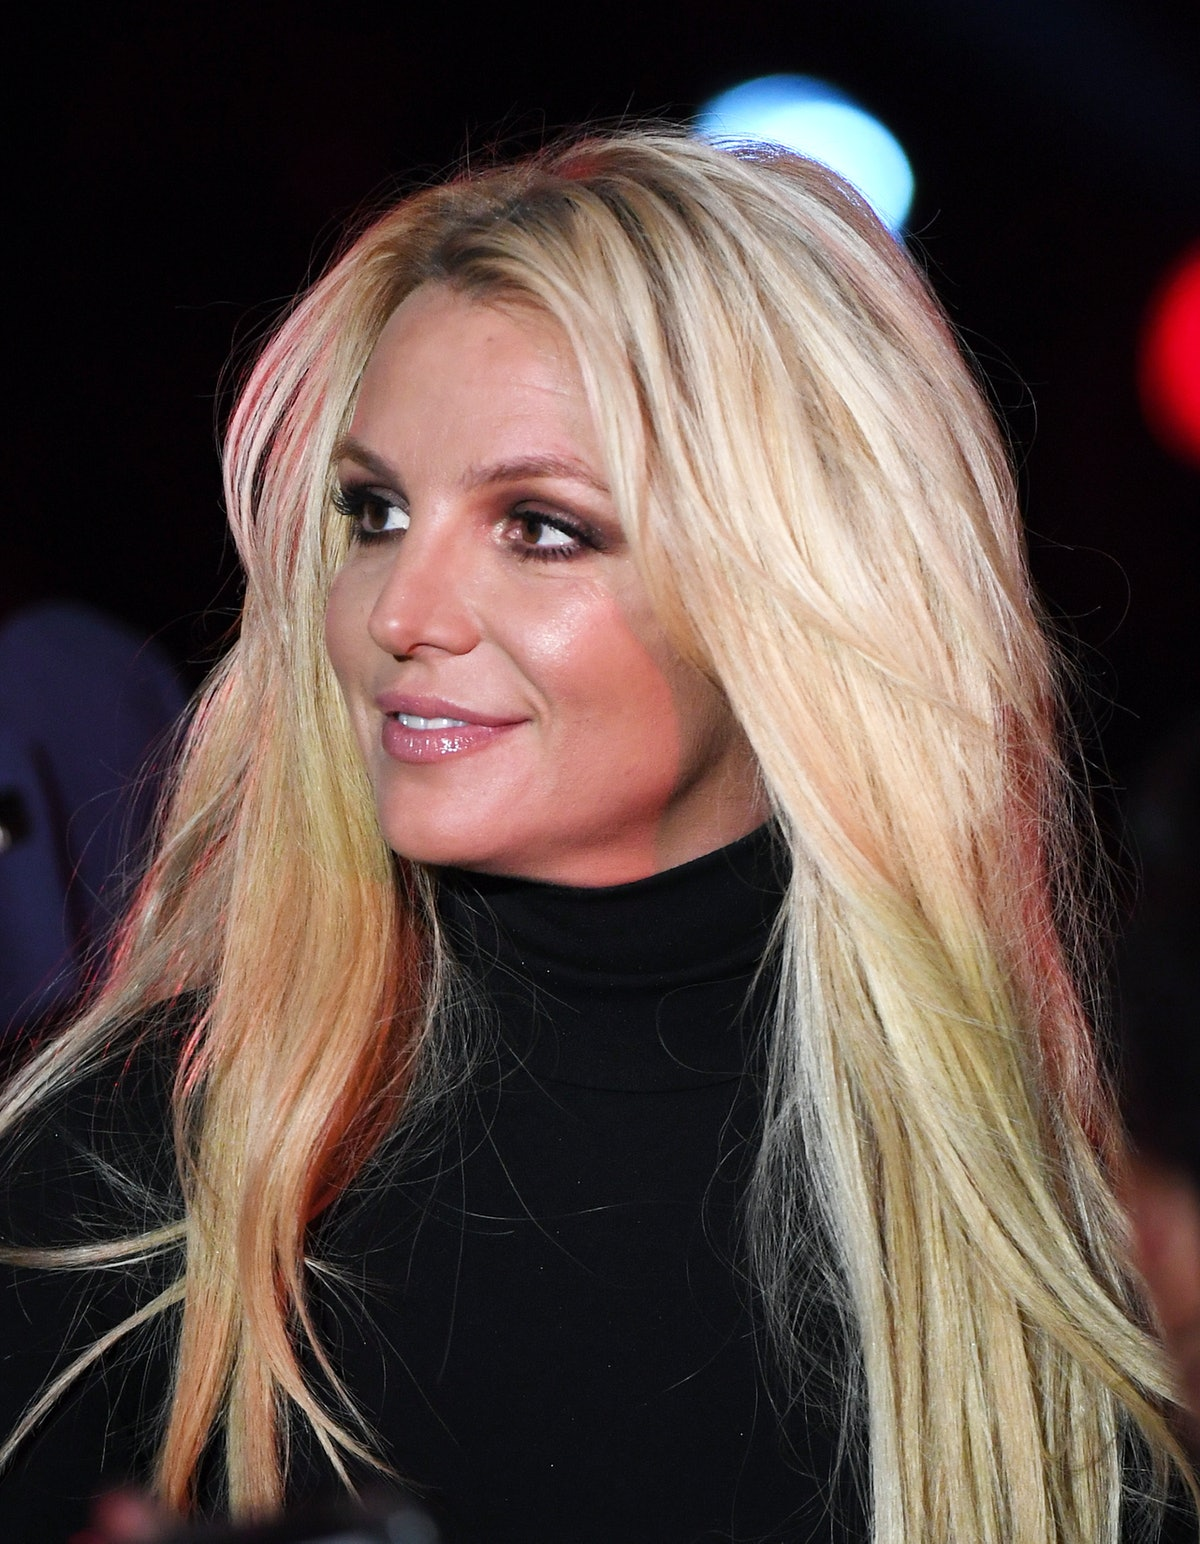 Britney Spears wants her father investigated for conservatorship abuse.